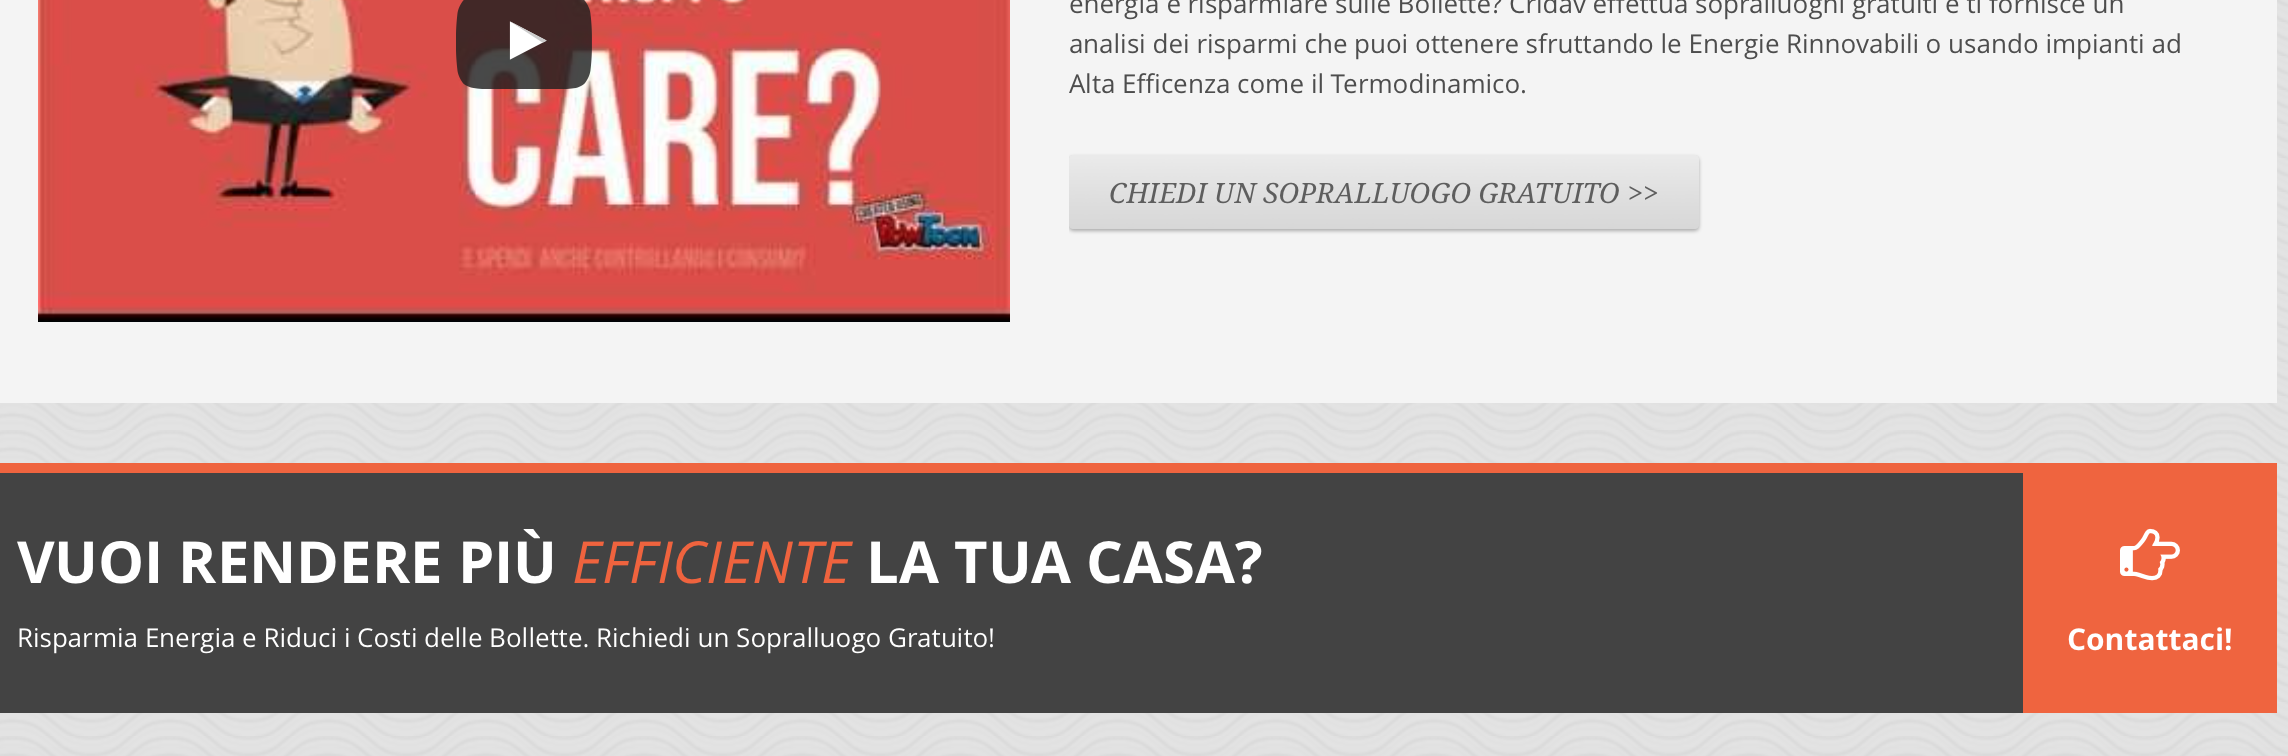 Esempio di Call to Action